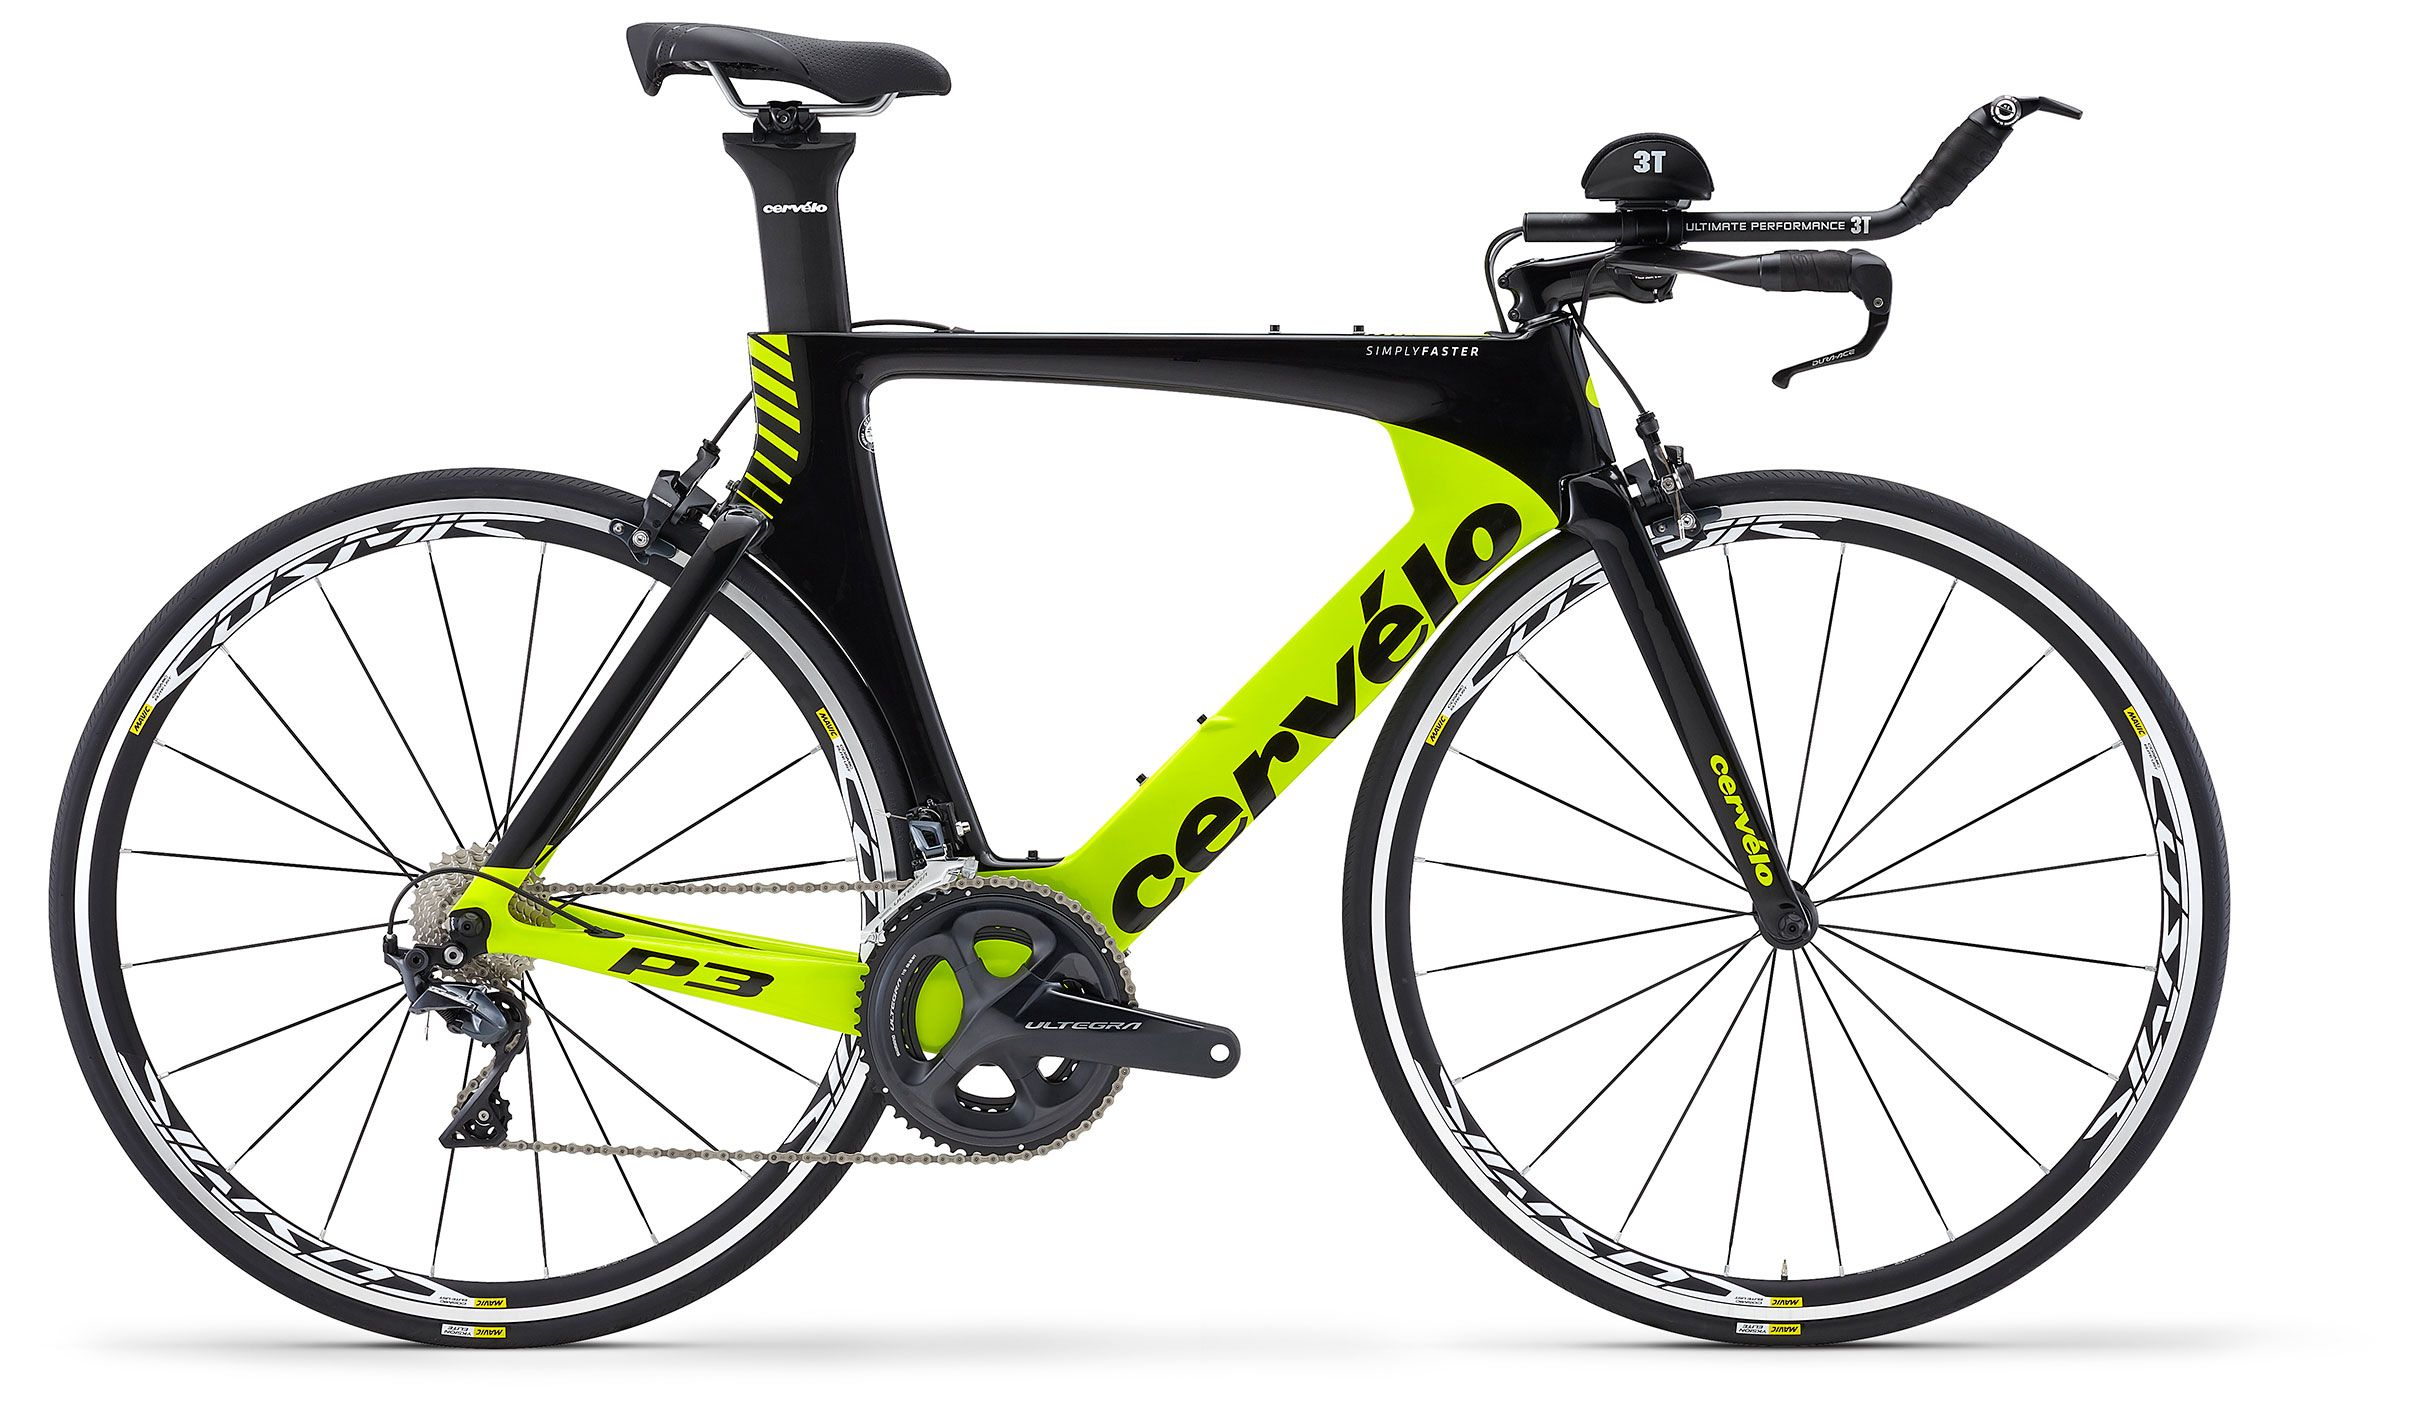 Велосипед Cervelo P3 Ultegra Di2 2018 велосипед cannondale supersix evo ultegra 3 2016